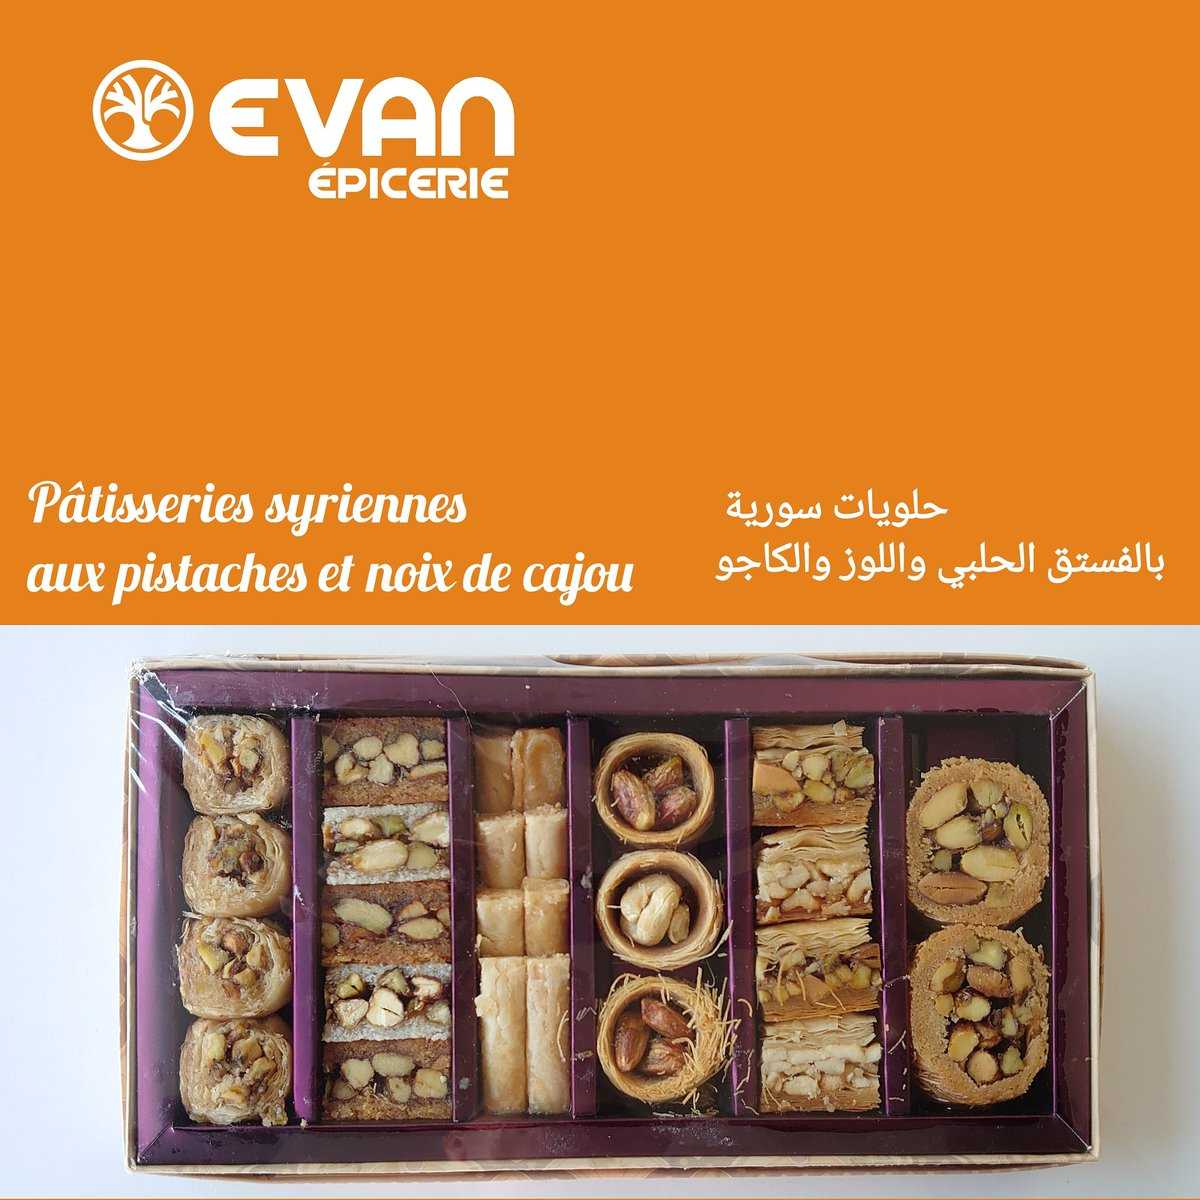 #epicerie #evan_épicerie #journal  #savonnaturel  #savondalep #patisserie #sucré #alep  #syrie #less_calorie  #savon #savonartisanal #savondalep #france #lemans #anger #sydney #london #paris #berlin #lyon #paris  #sartorial #pâtisserie #paysage #patisseriefrancaise #damas #paris https://t.co/qUZrgQK4v6